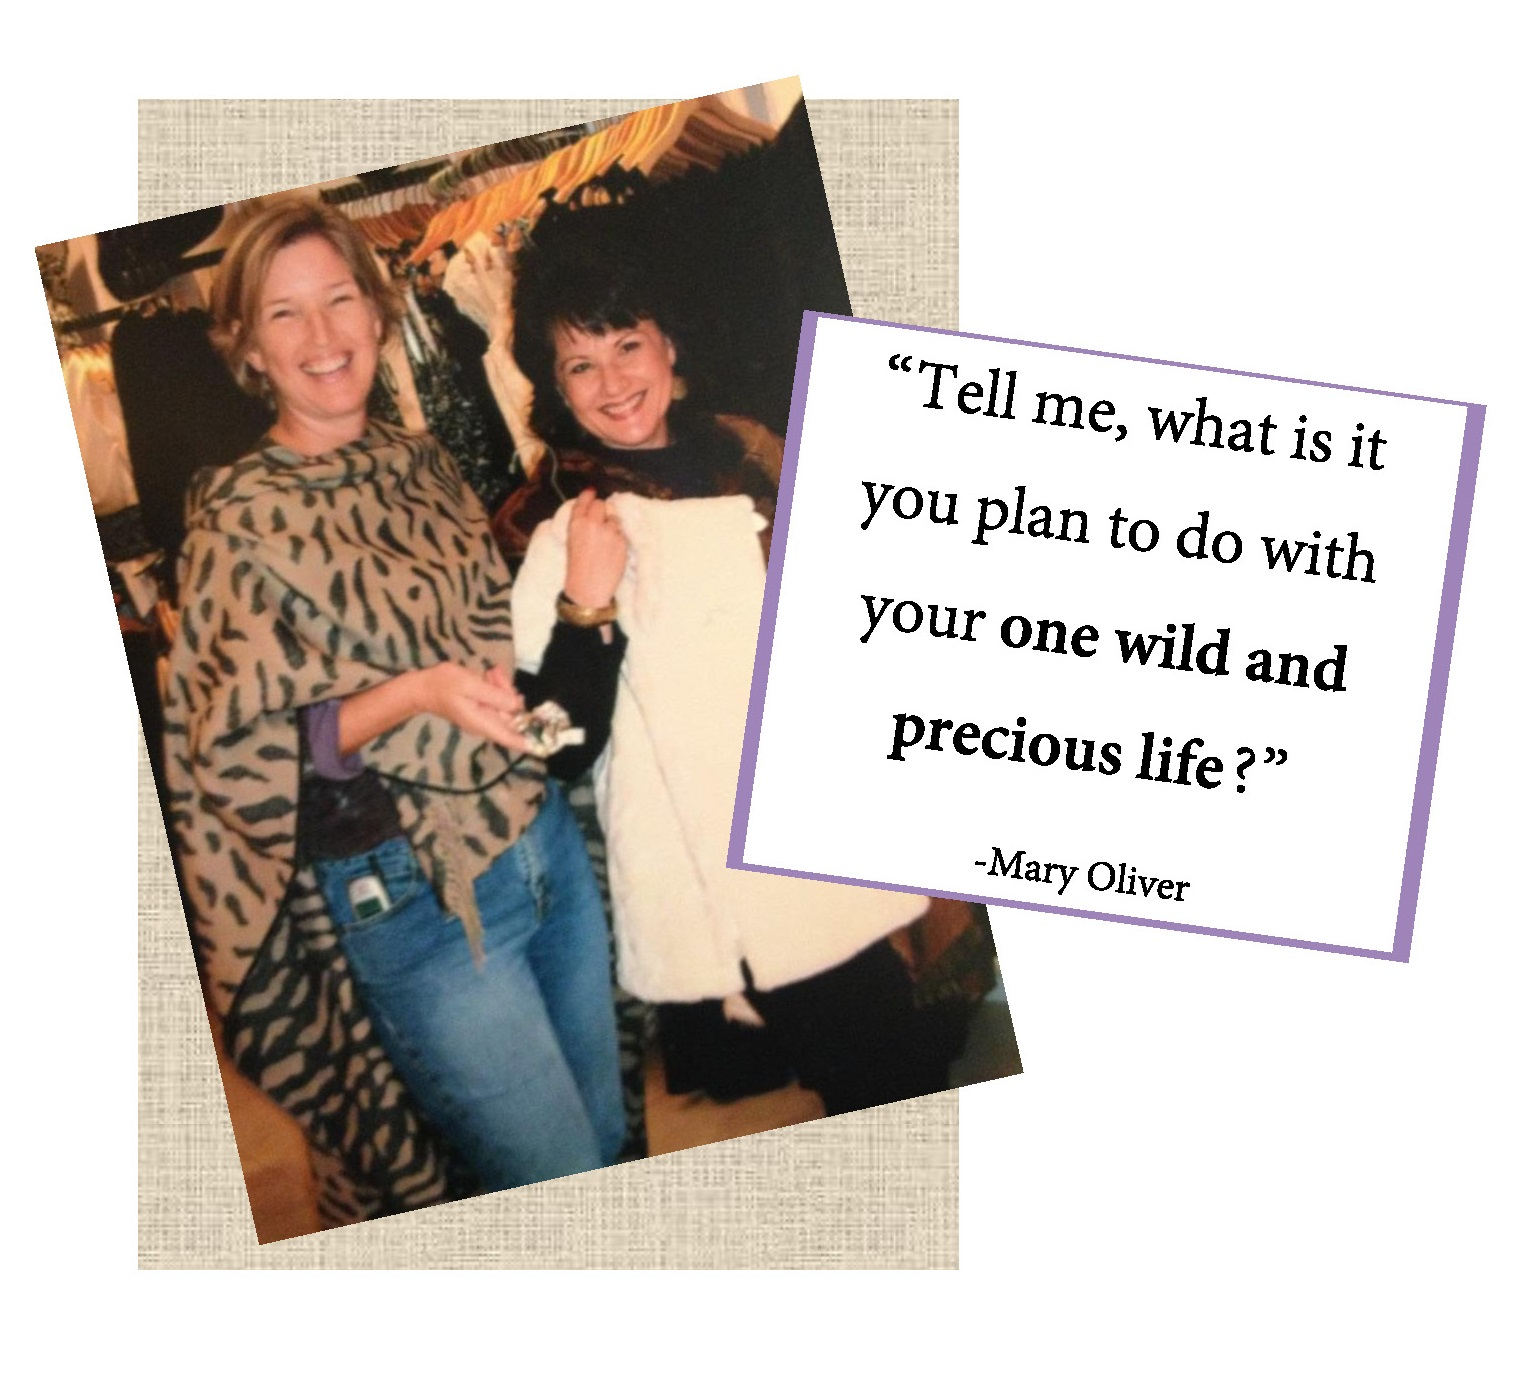 mary oliver, quote about life, life well lived, love, friendship, cancer, colon cancer, Jenni Harwell, Jennifer Harwell Art